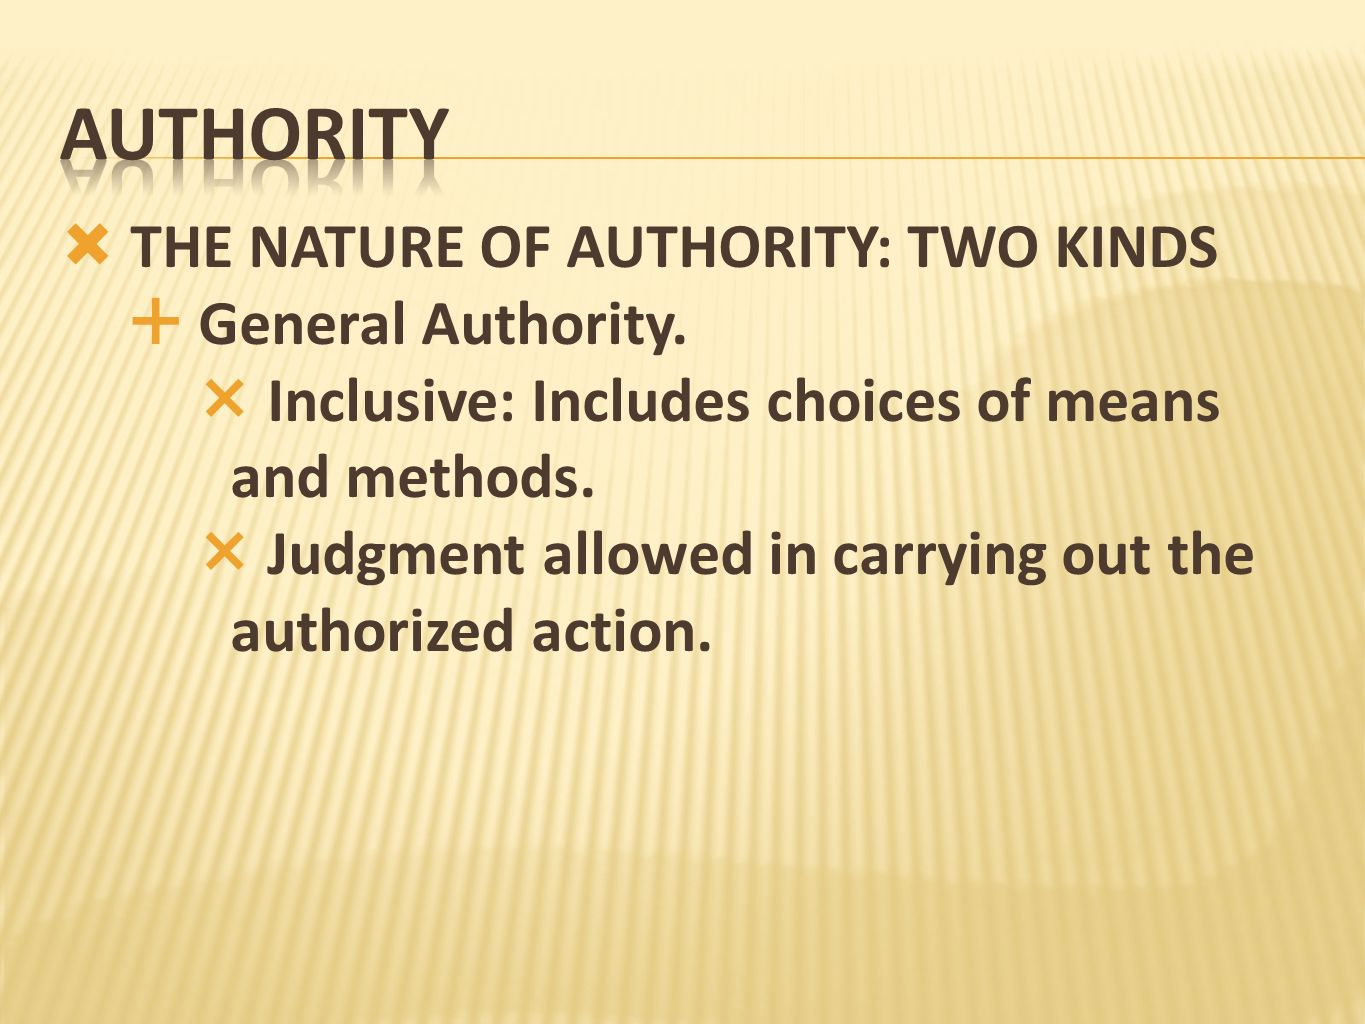 authority THE NATURE OF AUTHORITY: TWO KINDS General Authority.